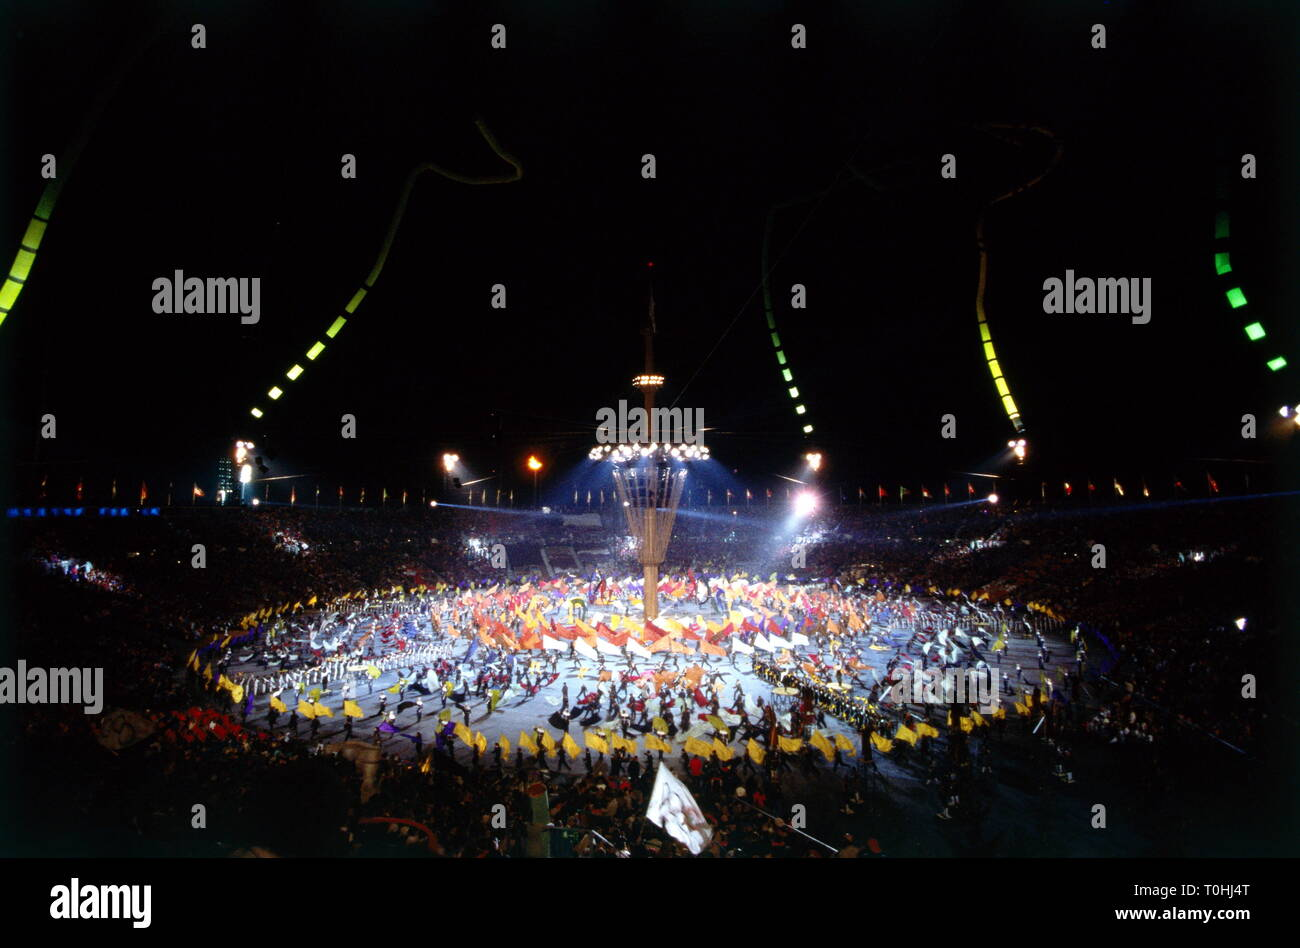 sports, XVI Winter Olympic Games, Albertville, 1992, opening ceremony, Additional-Rights-Clearance-Info-Not-Available - Stock Image